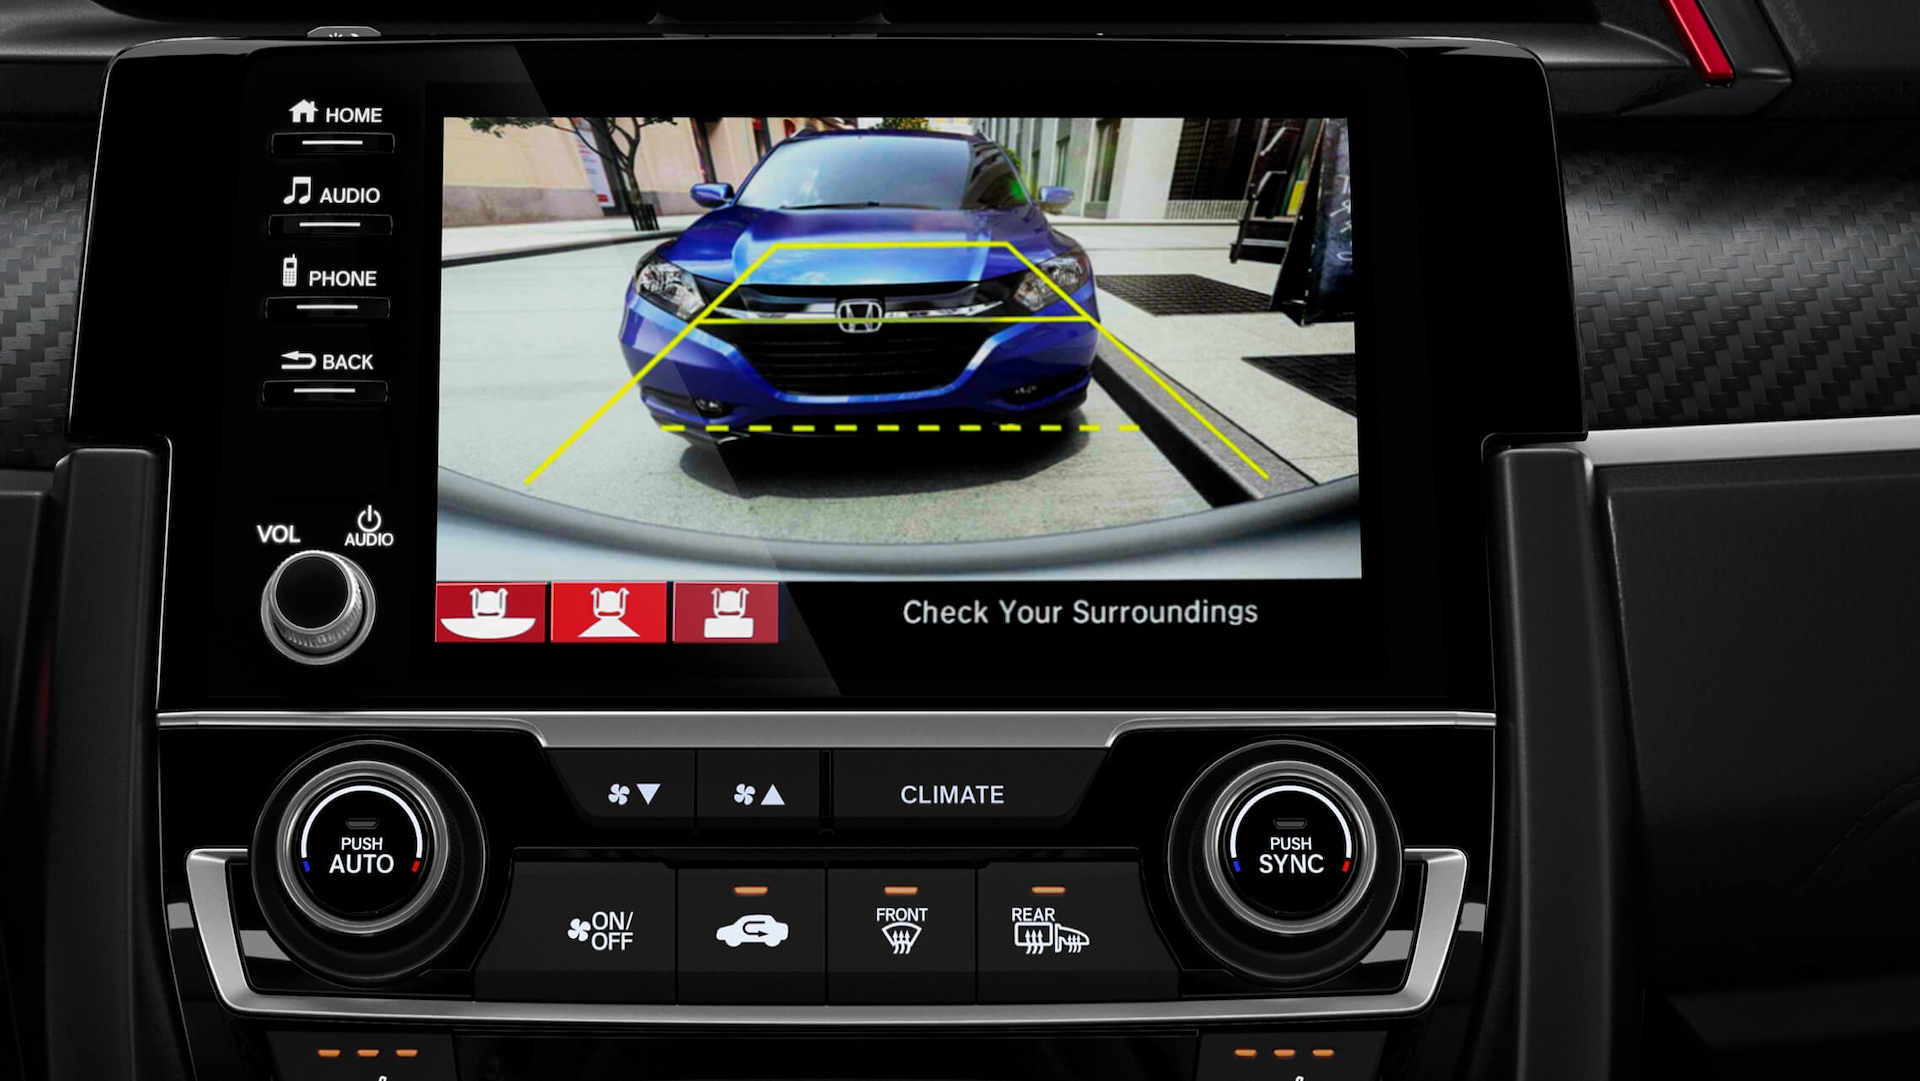 Rearview camera detail on 7-inch display screen in 2020 Honda Civic Si Sedan.